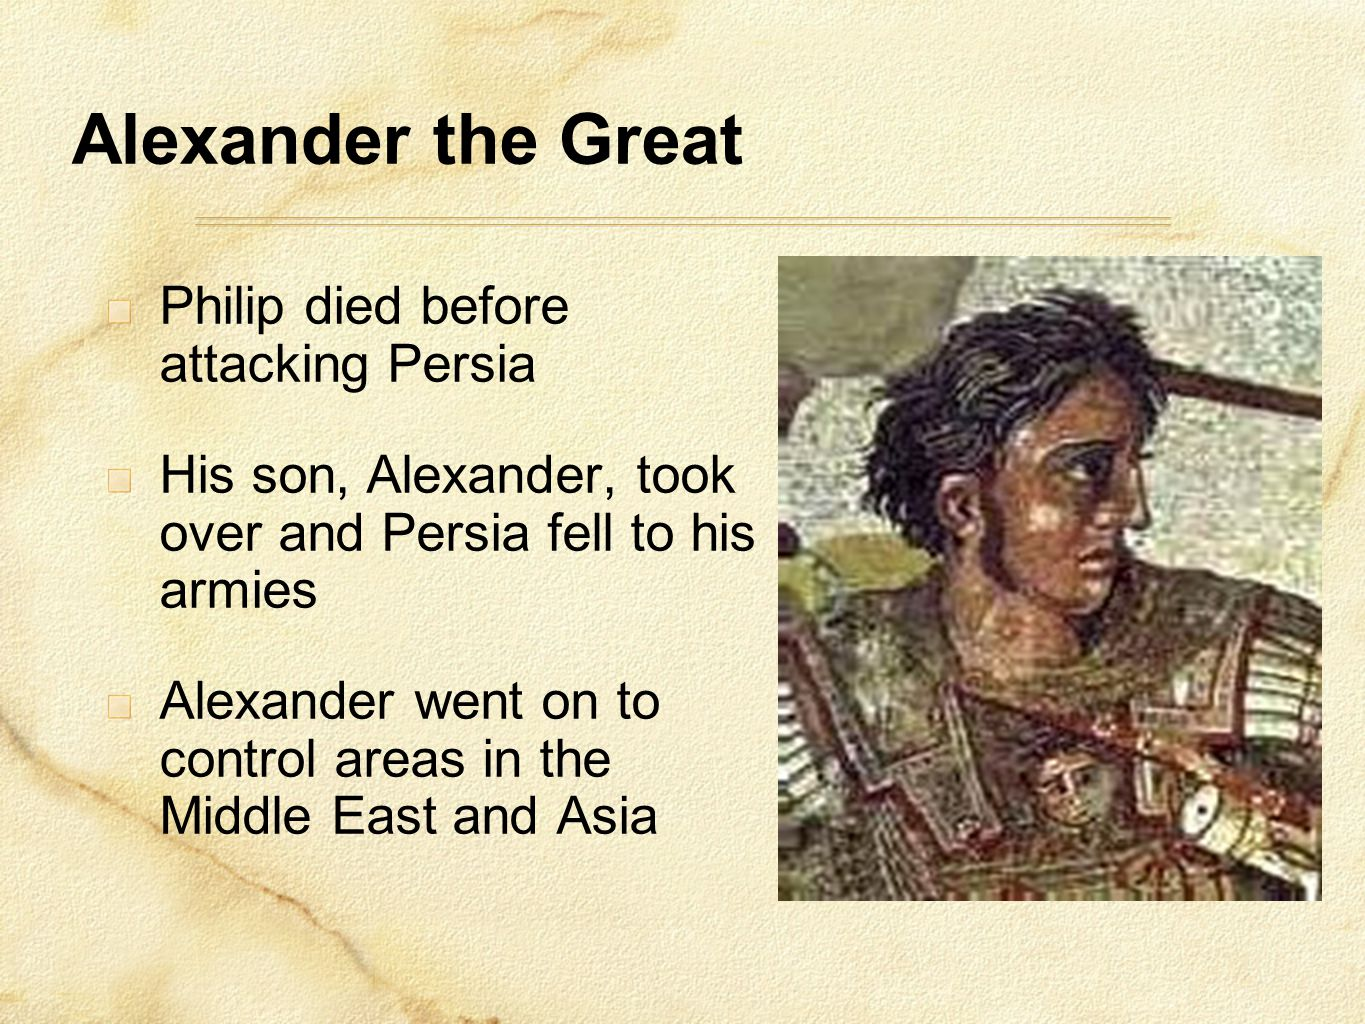 Alexander the Great Philip died before attacking Persia